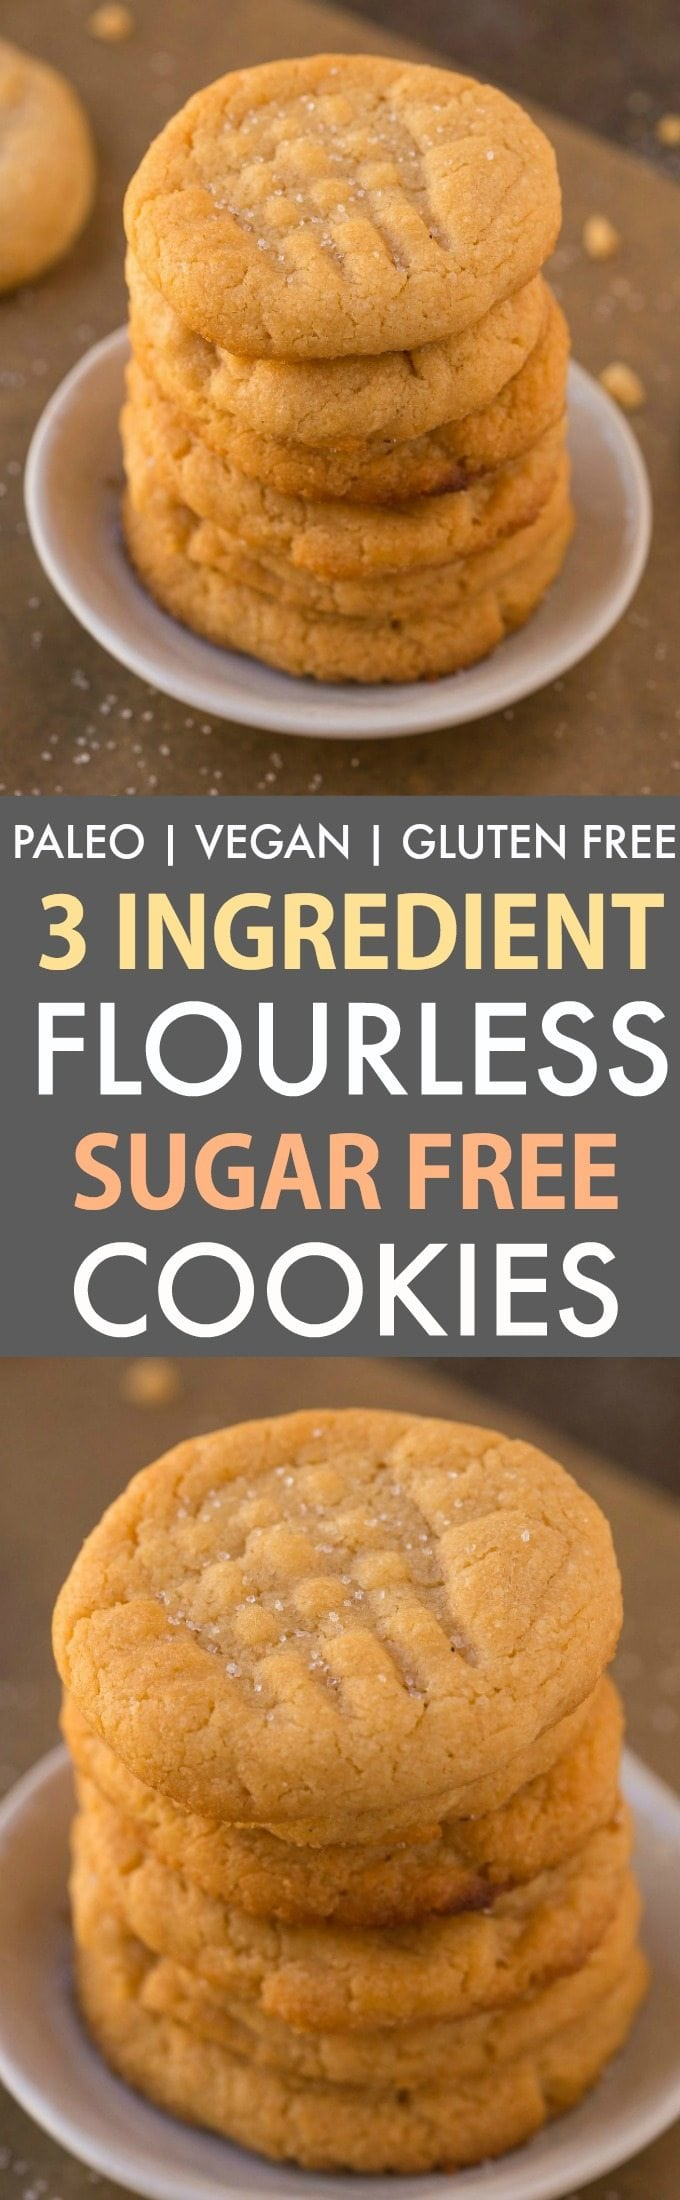 3-Ingredient Sugar-Free Flourless Cookies (V, GF, Paleo, DF)- The classic three ingredient peanut butter cookie gets a sugar-free, egg-free and healthy makeover! Ready in just 10 minutes! {vegan, gluten free, grain free recipe}- thebigmansworld.com